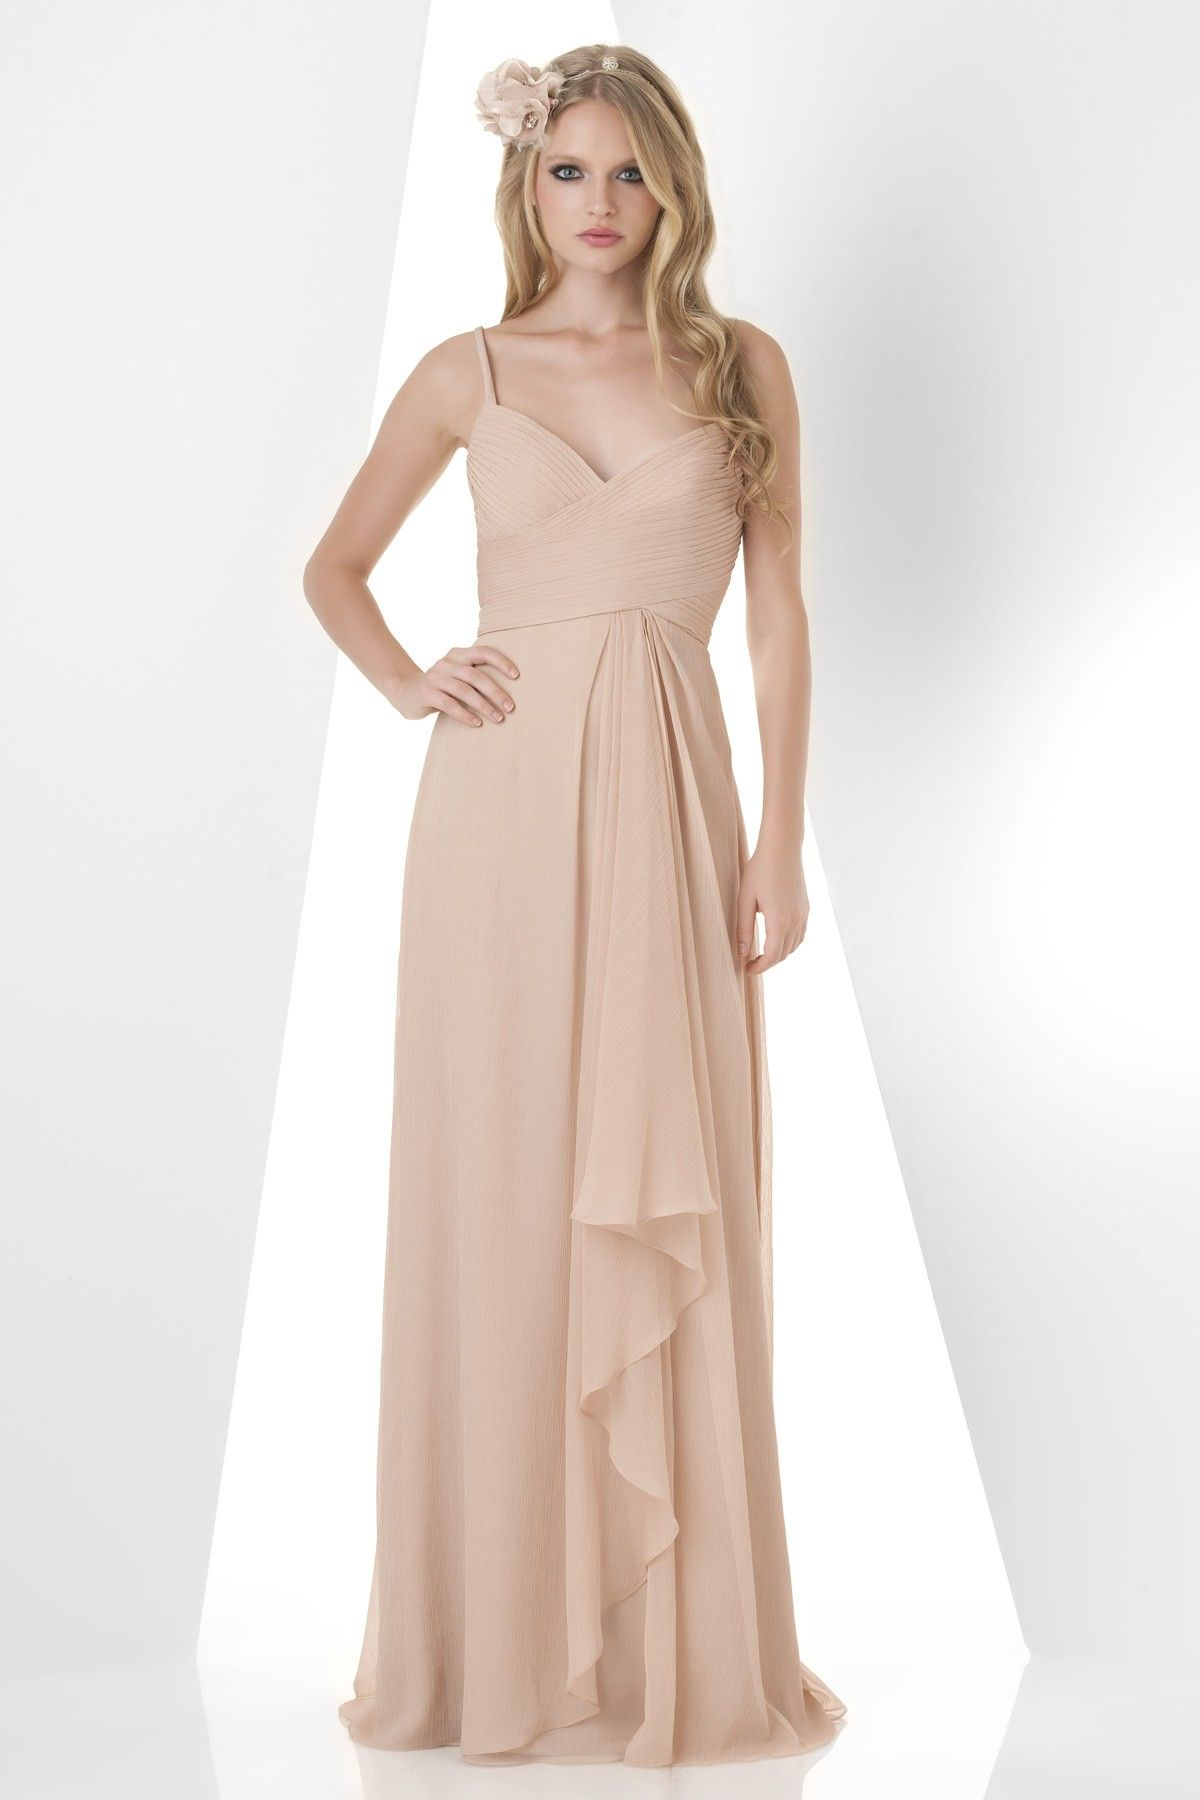 Bari Jay spring 2014 bridesmaid dress collection style V neck, shirred bust  criss cross back with side drape ruffle